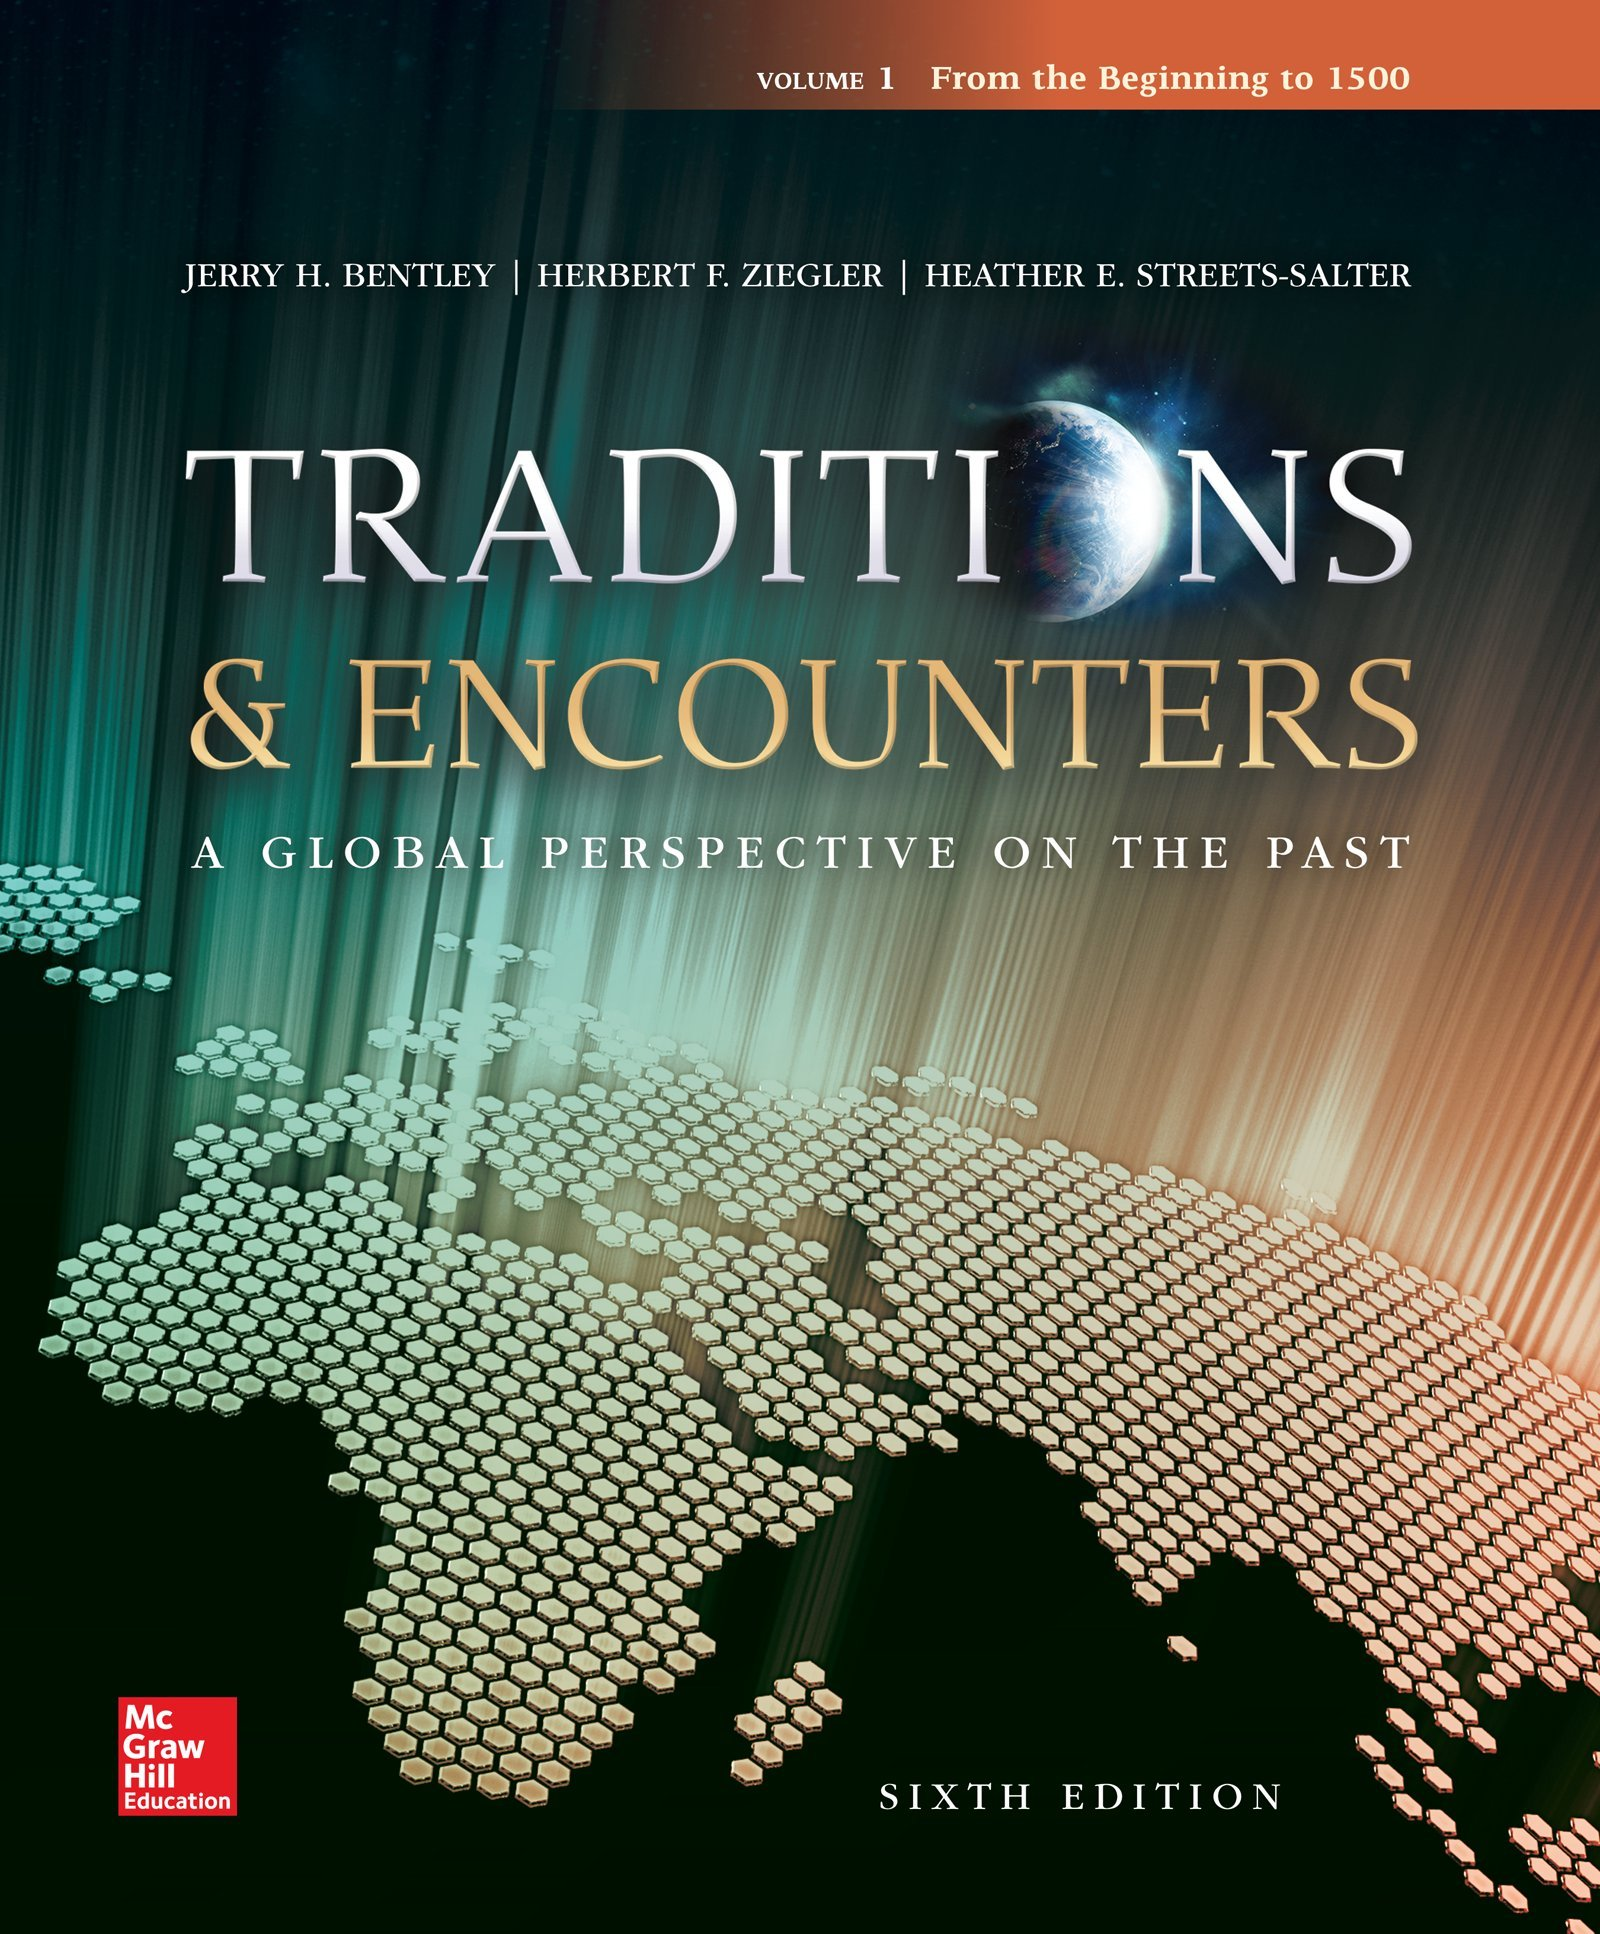 Traditions & Encounters Volume 1 From the Beginning to 1500 by McGraw-Hill Education